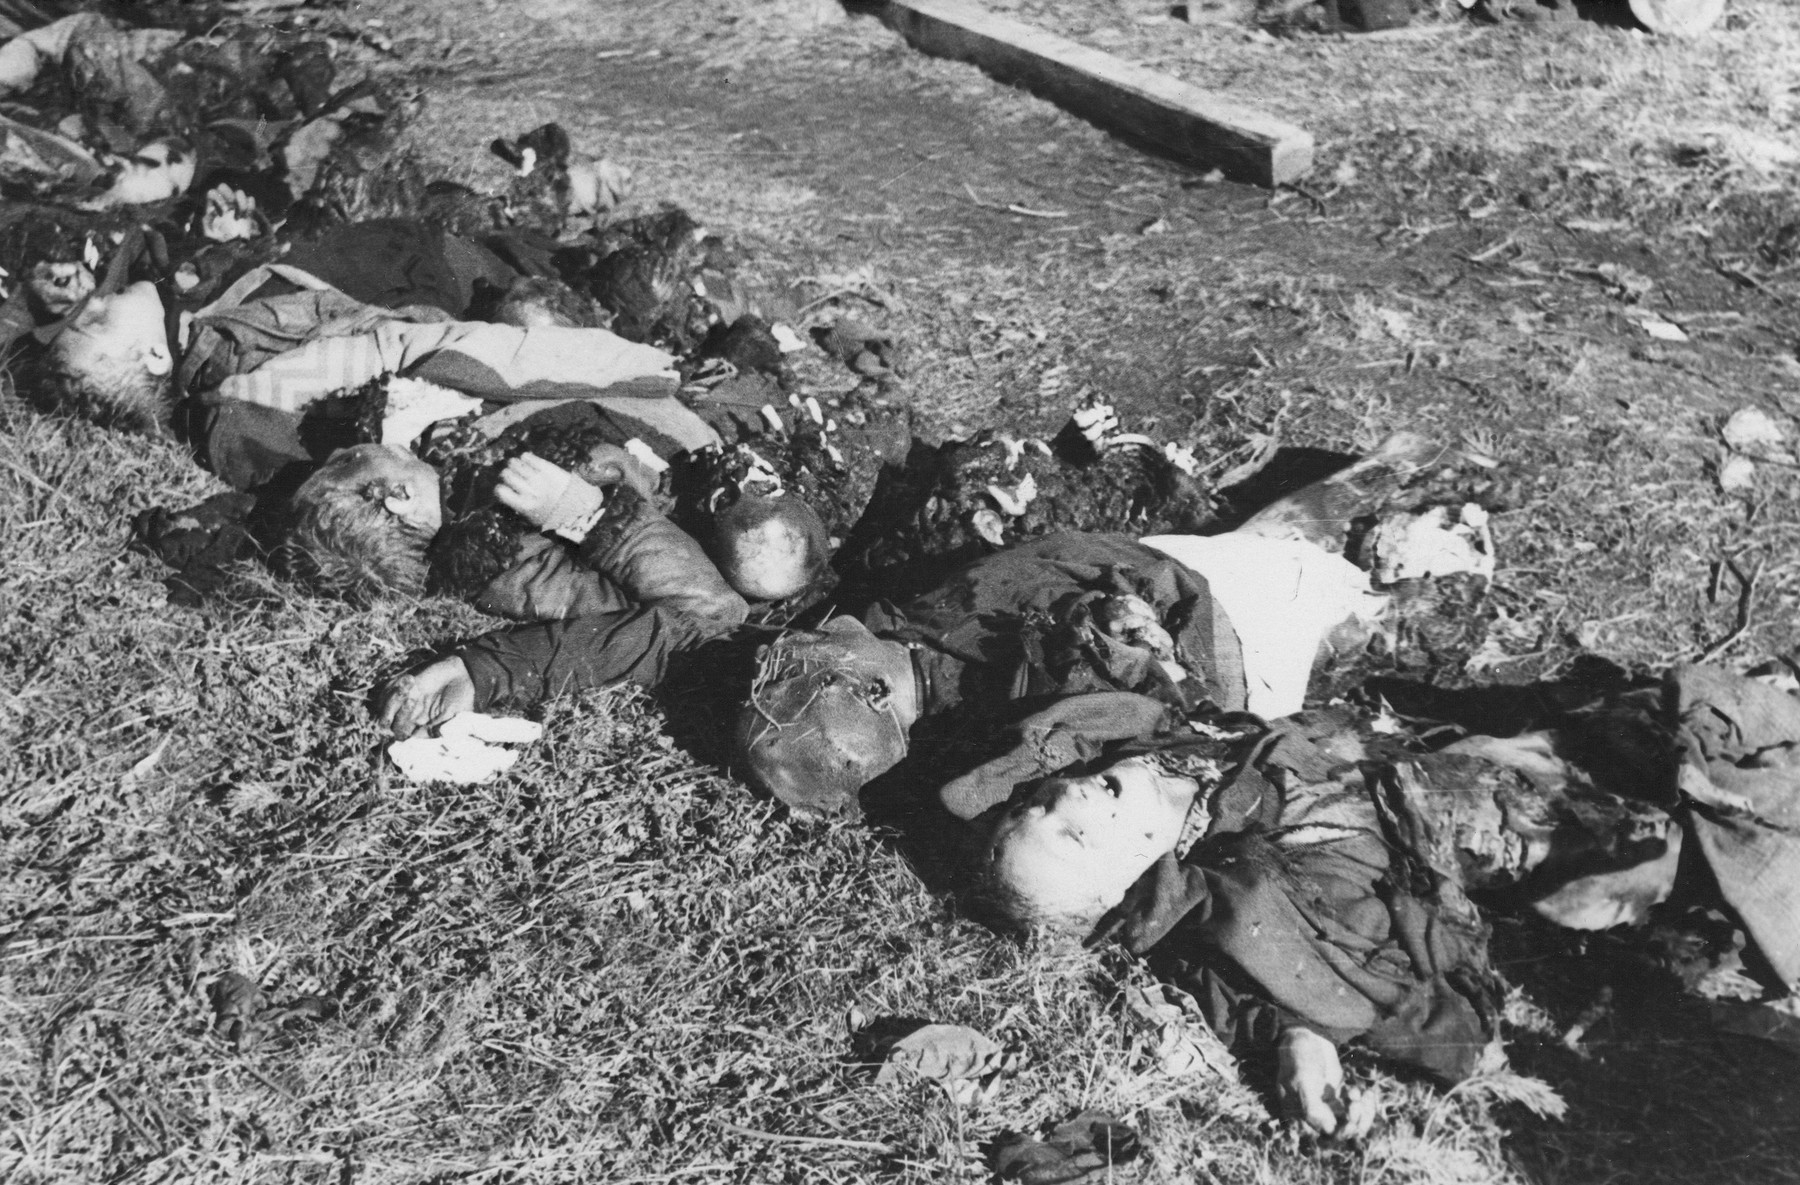 The partially burned corpses of former inmates are lined up on the ground at the Klooga concentration camp.